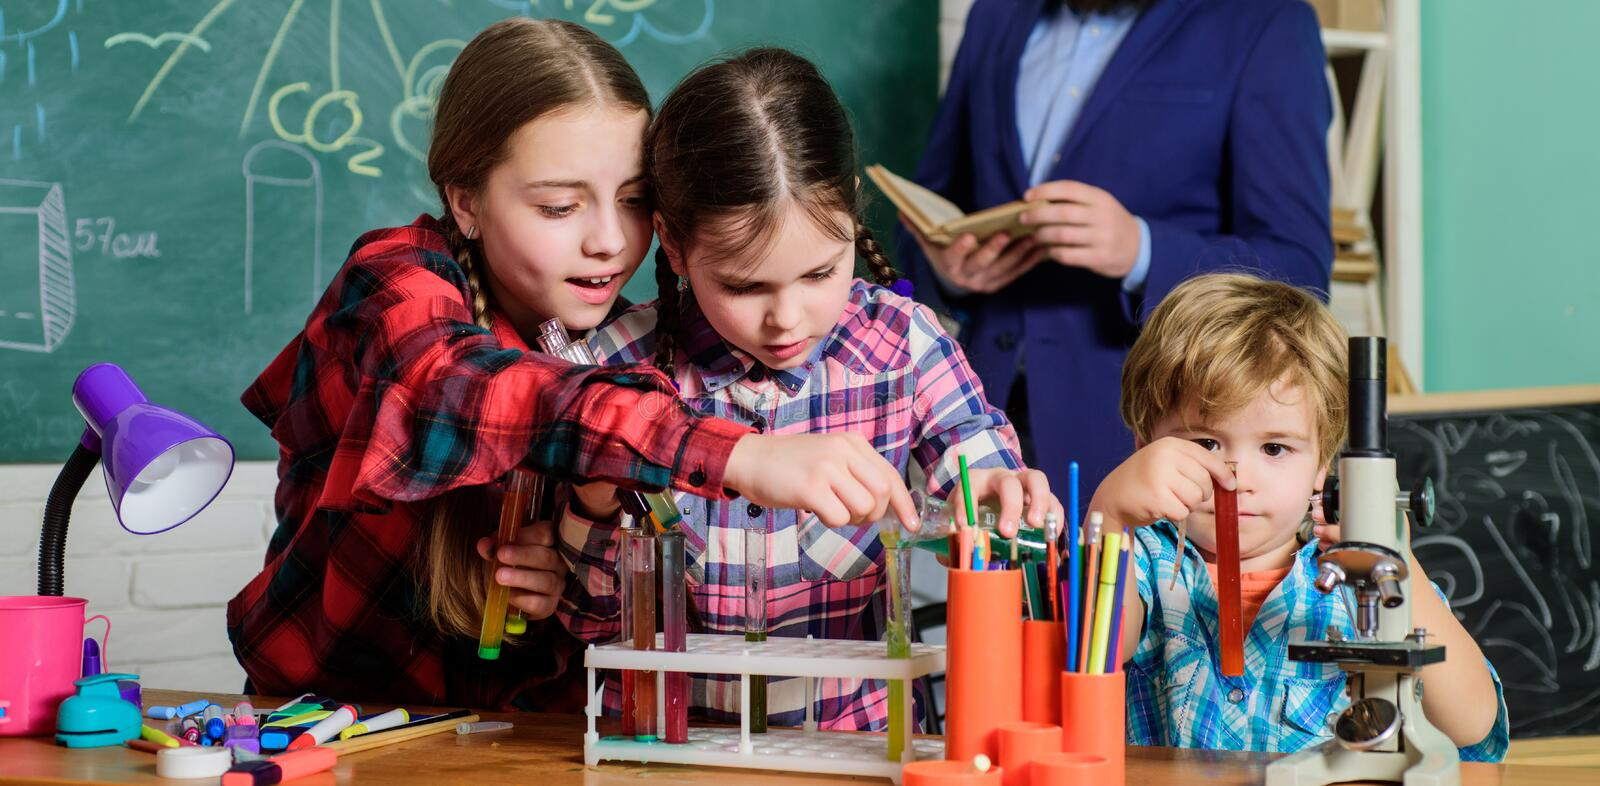 Formal education. Learning is integrated. Group interaction communication. Practical knowledge. Elementary basic stock photos